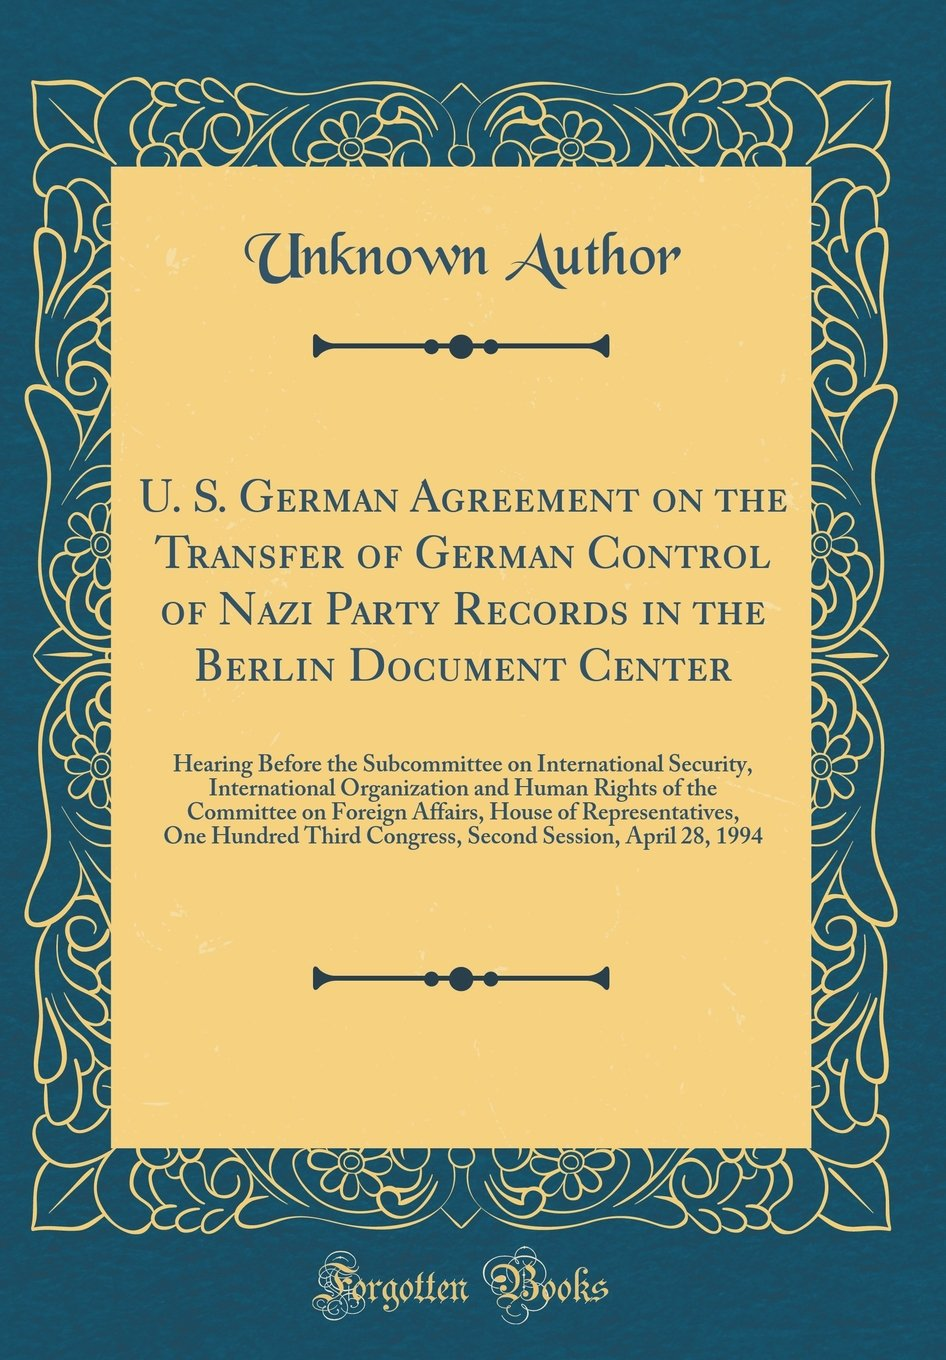 Download U. S. German Agreement on the Transfer of German Control of Nazi Party Records in the Berlin Document Center: Hearing Before the Subcommittee on ... of the Committee on Foreign Affairs, House pdf epub